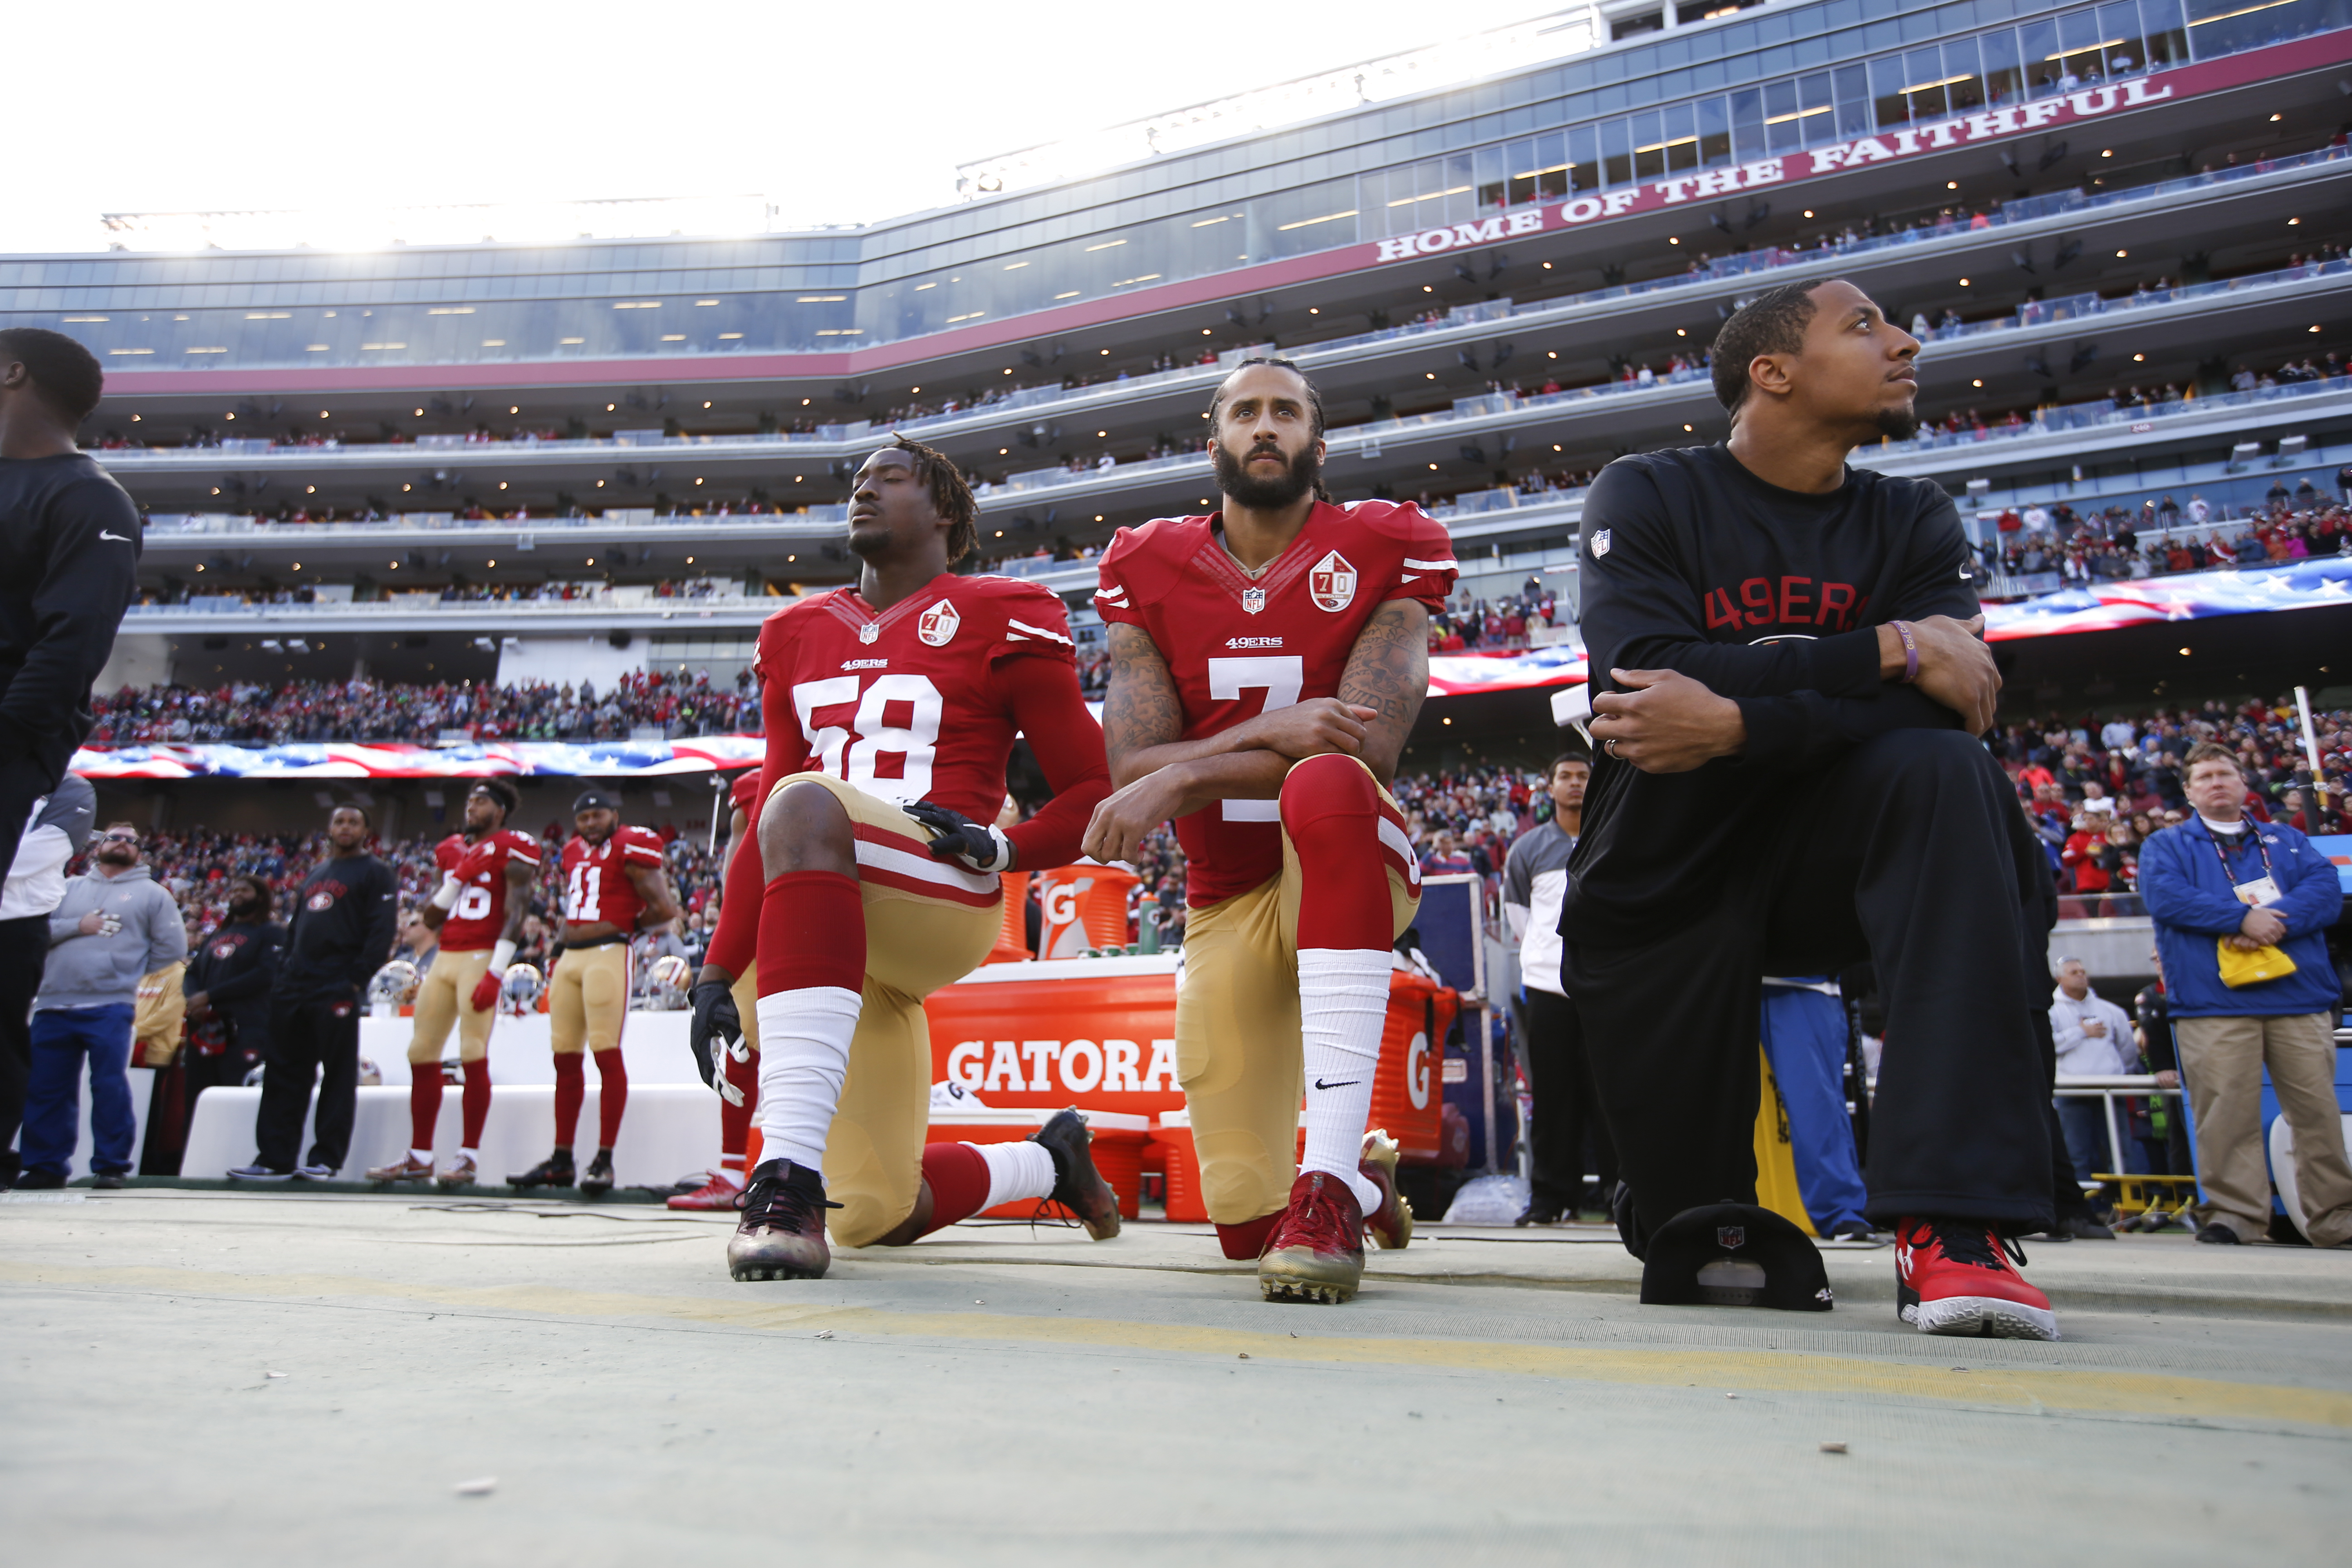 SANTA CLARA, CA - JANUARY 1: Eli Harold #58, Colin Kaepernick #7 and Eric Reid #35 of the San Francisco 49ers kneel on the sideline, during the anthem, prior to the game against the Seattle Seahawks at Levi Stadium on January 1, 2017 in Santa Clara, California. The Seahawks defeated the 49ers 25-23.